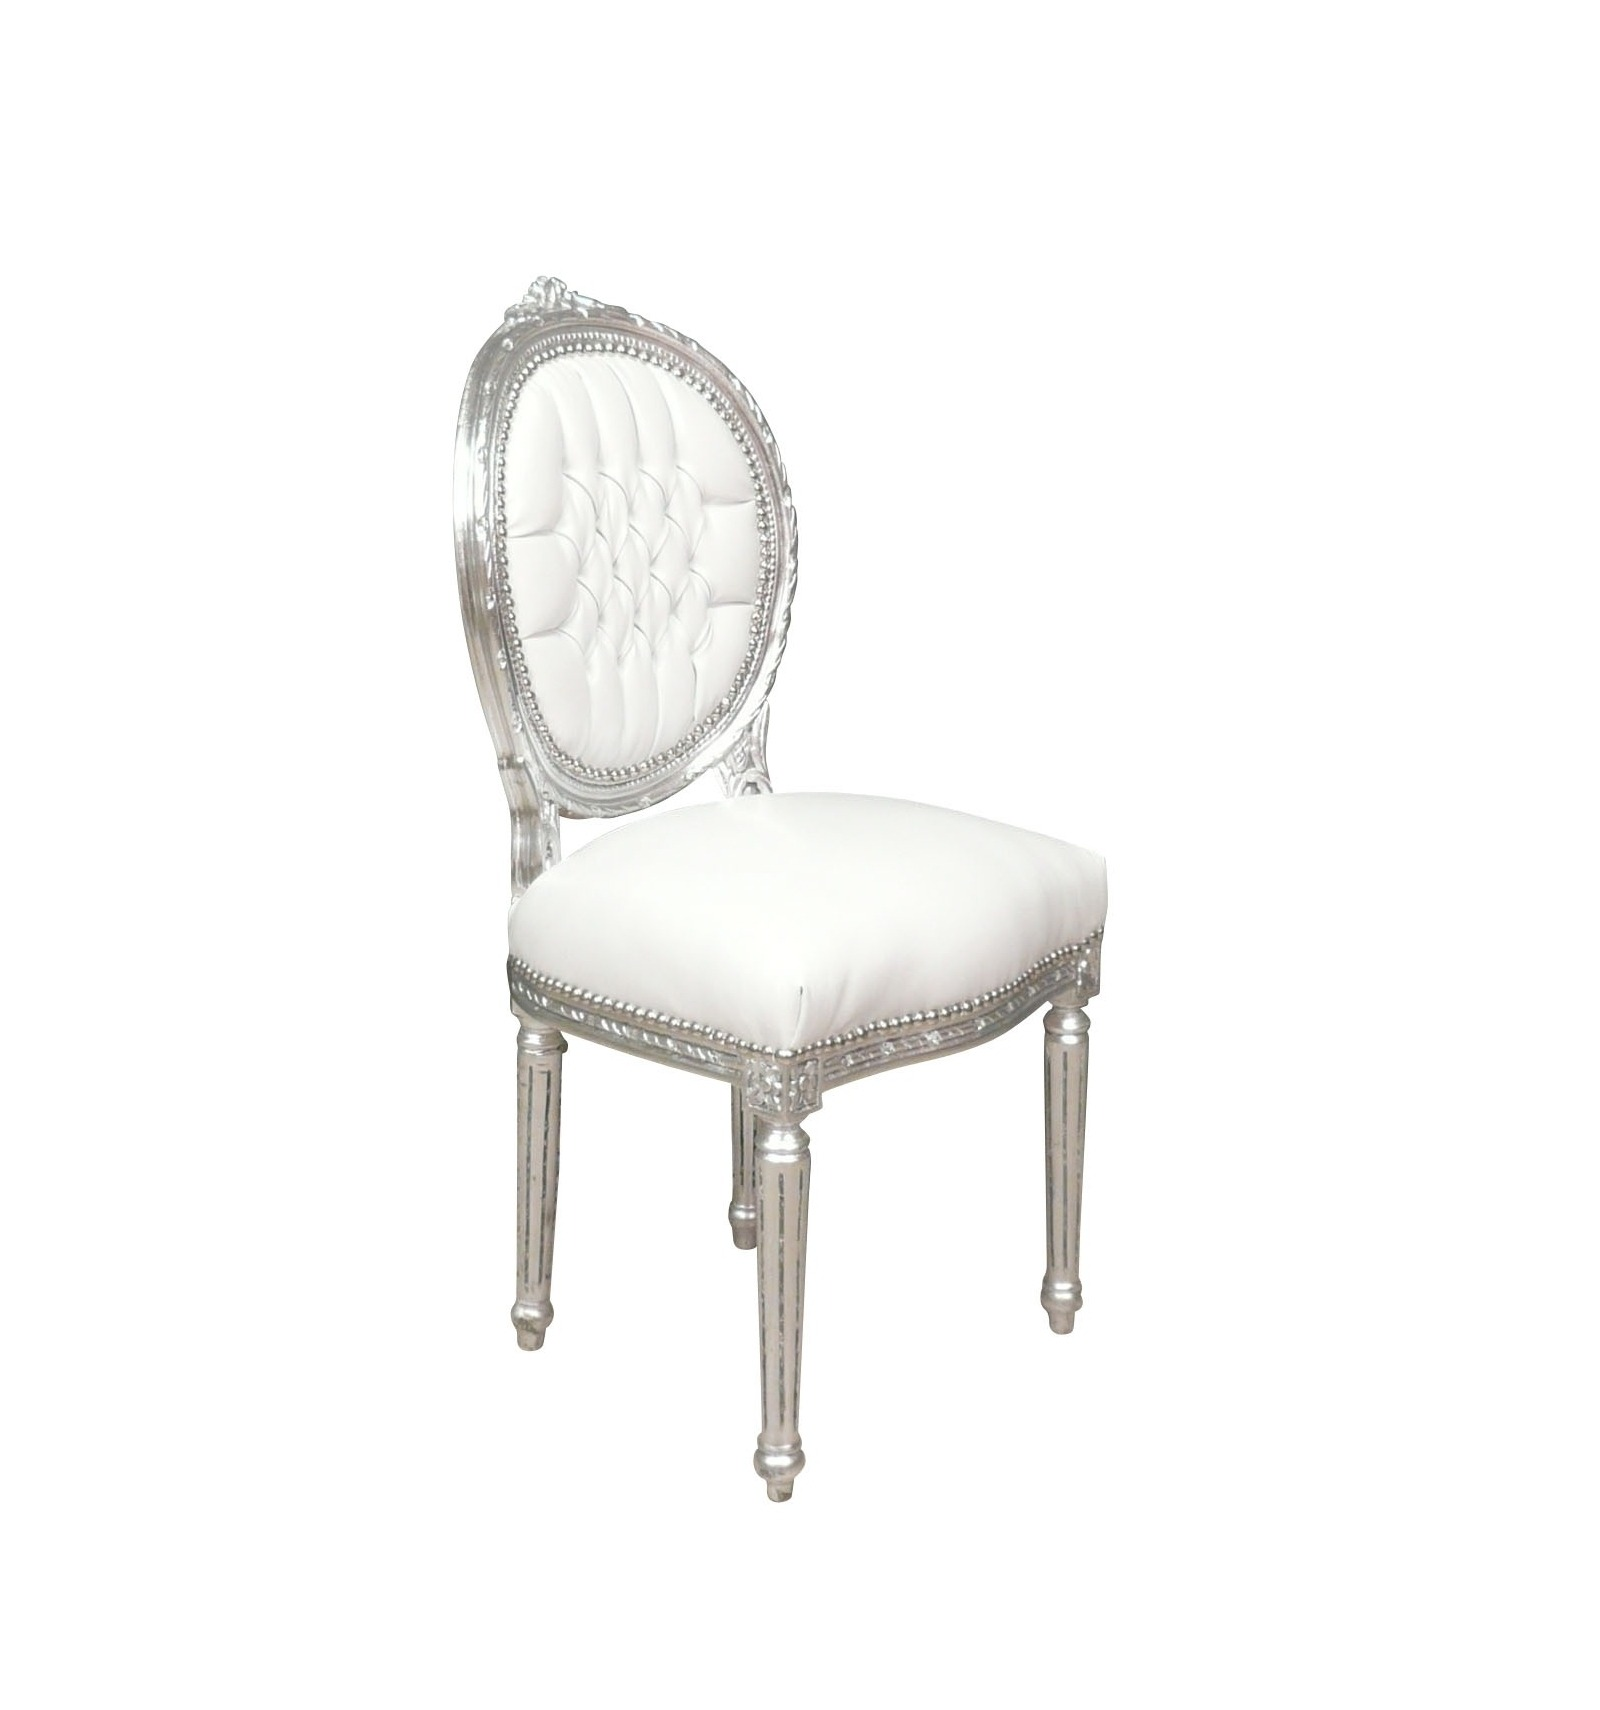 chaise louis xvi blanche et argent pas ch re. Black Bedroom Furniture Sets. Home Design Ideas